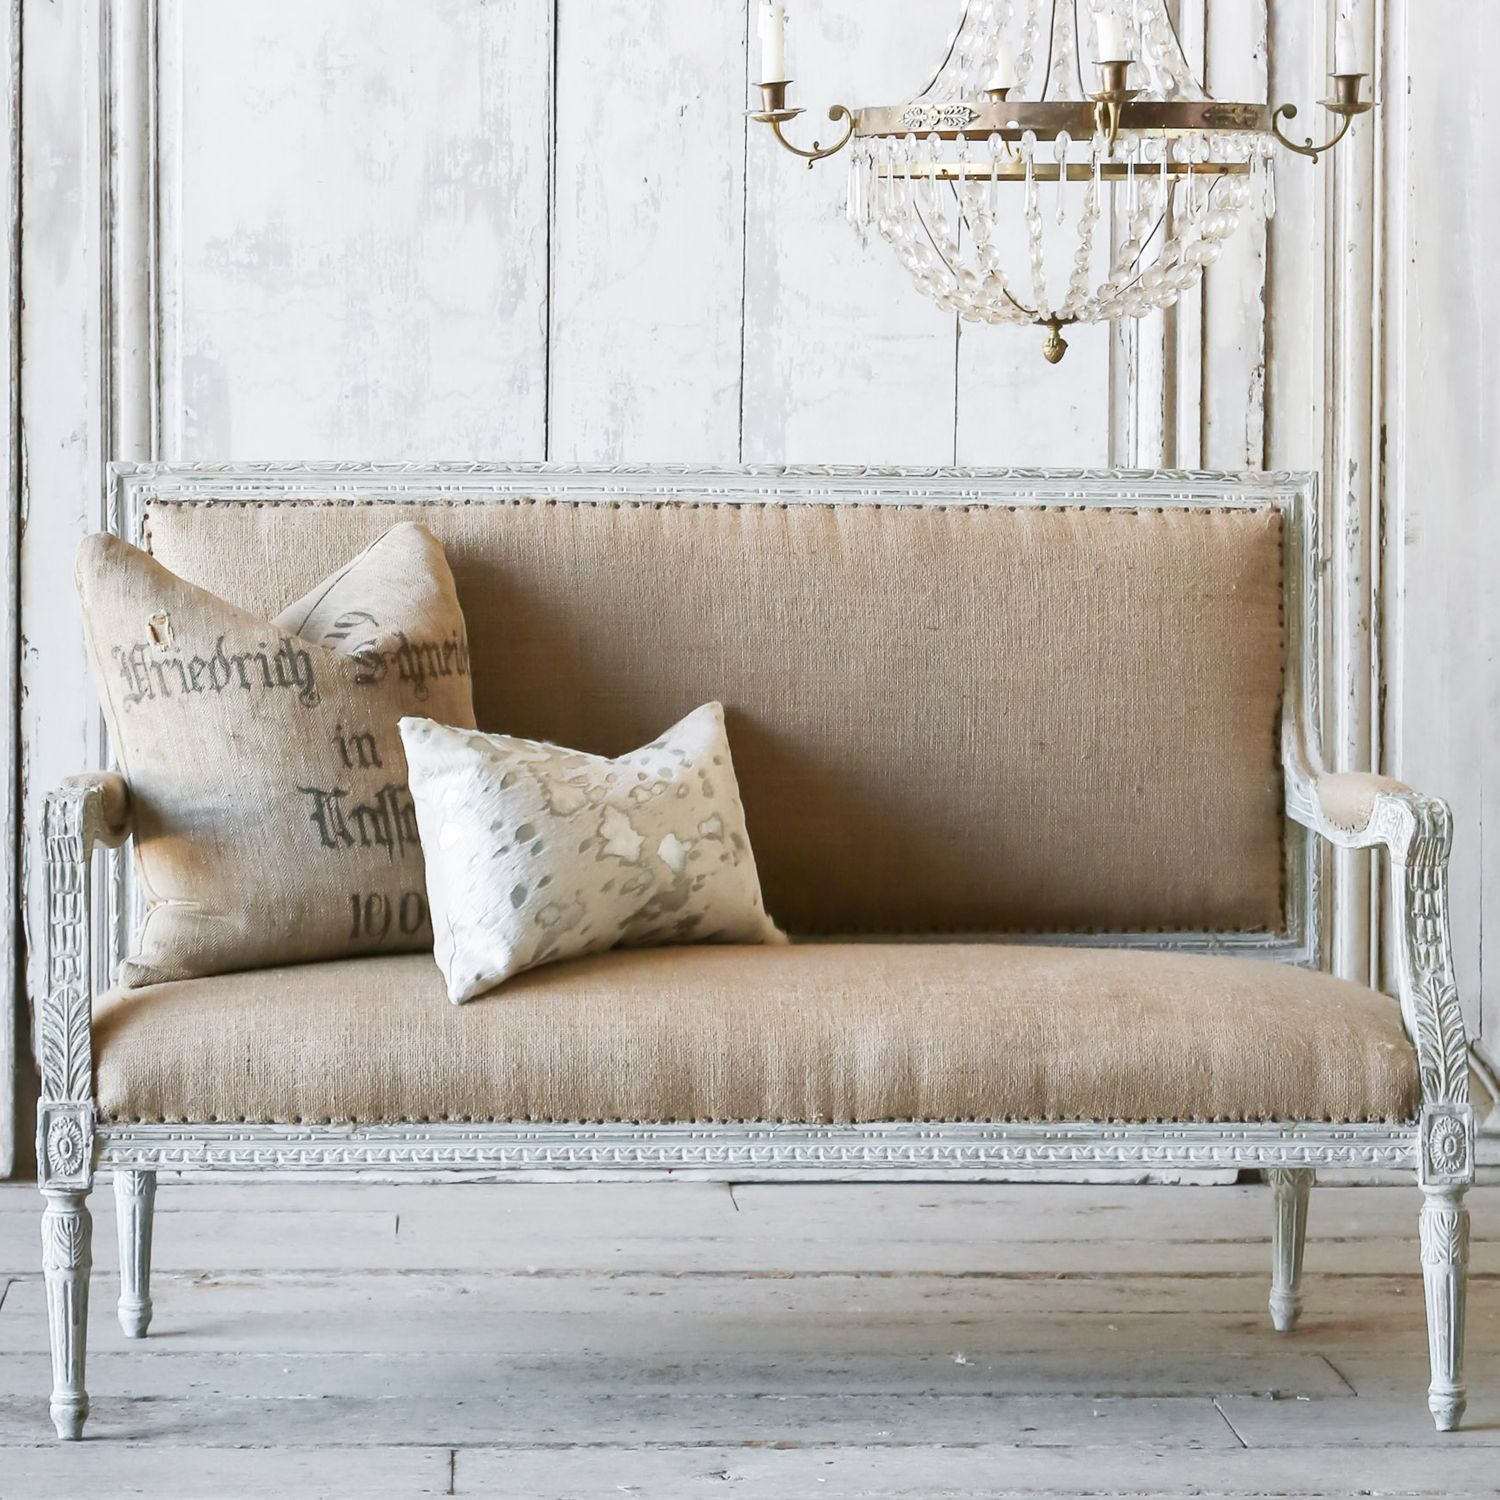 Eloquence One of a Kind Vintage Settee Louis XVI Weathered Gray Burlap #laylagrayce